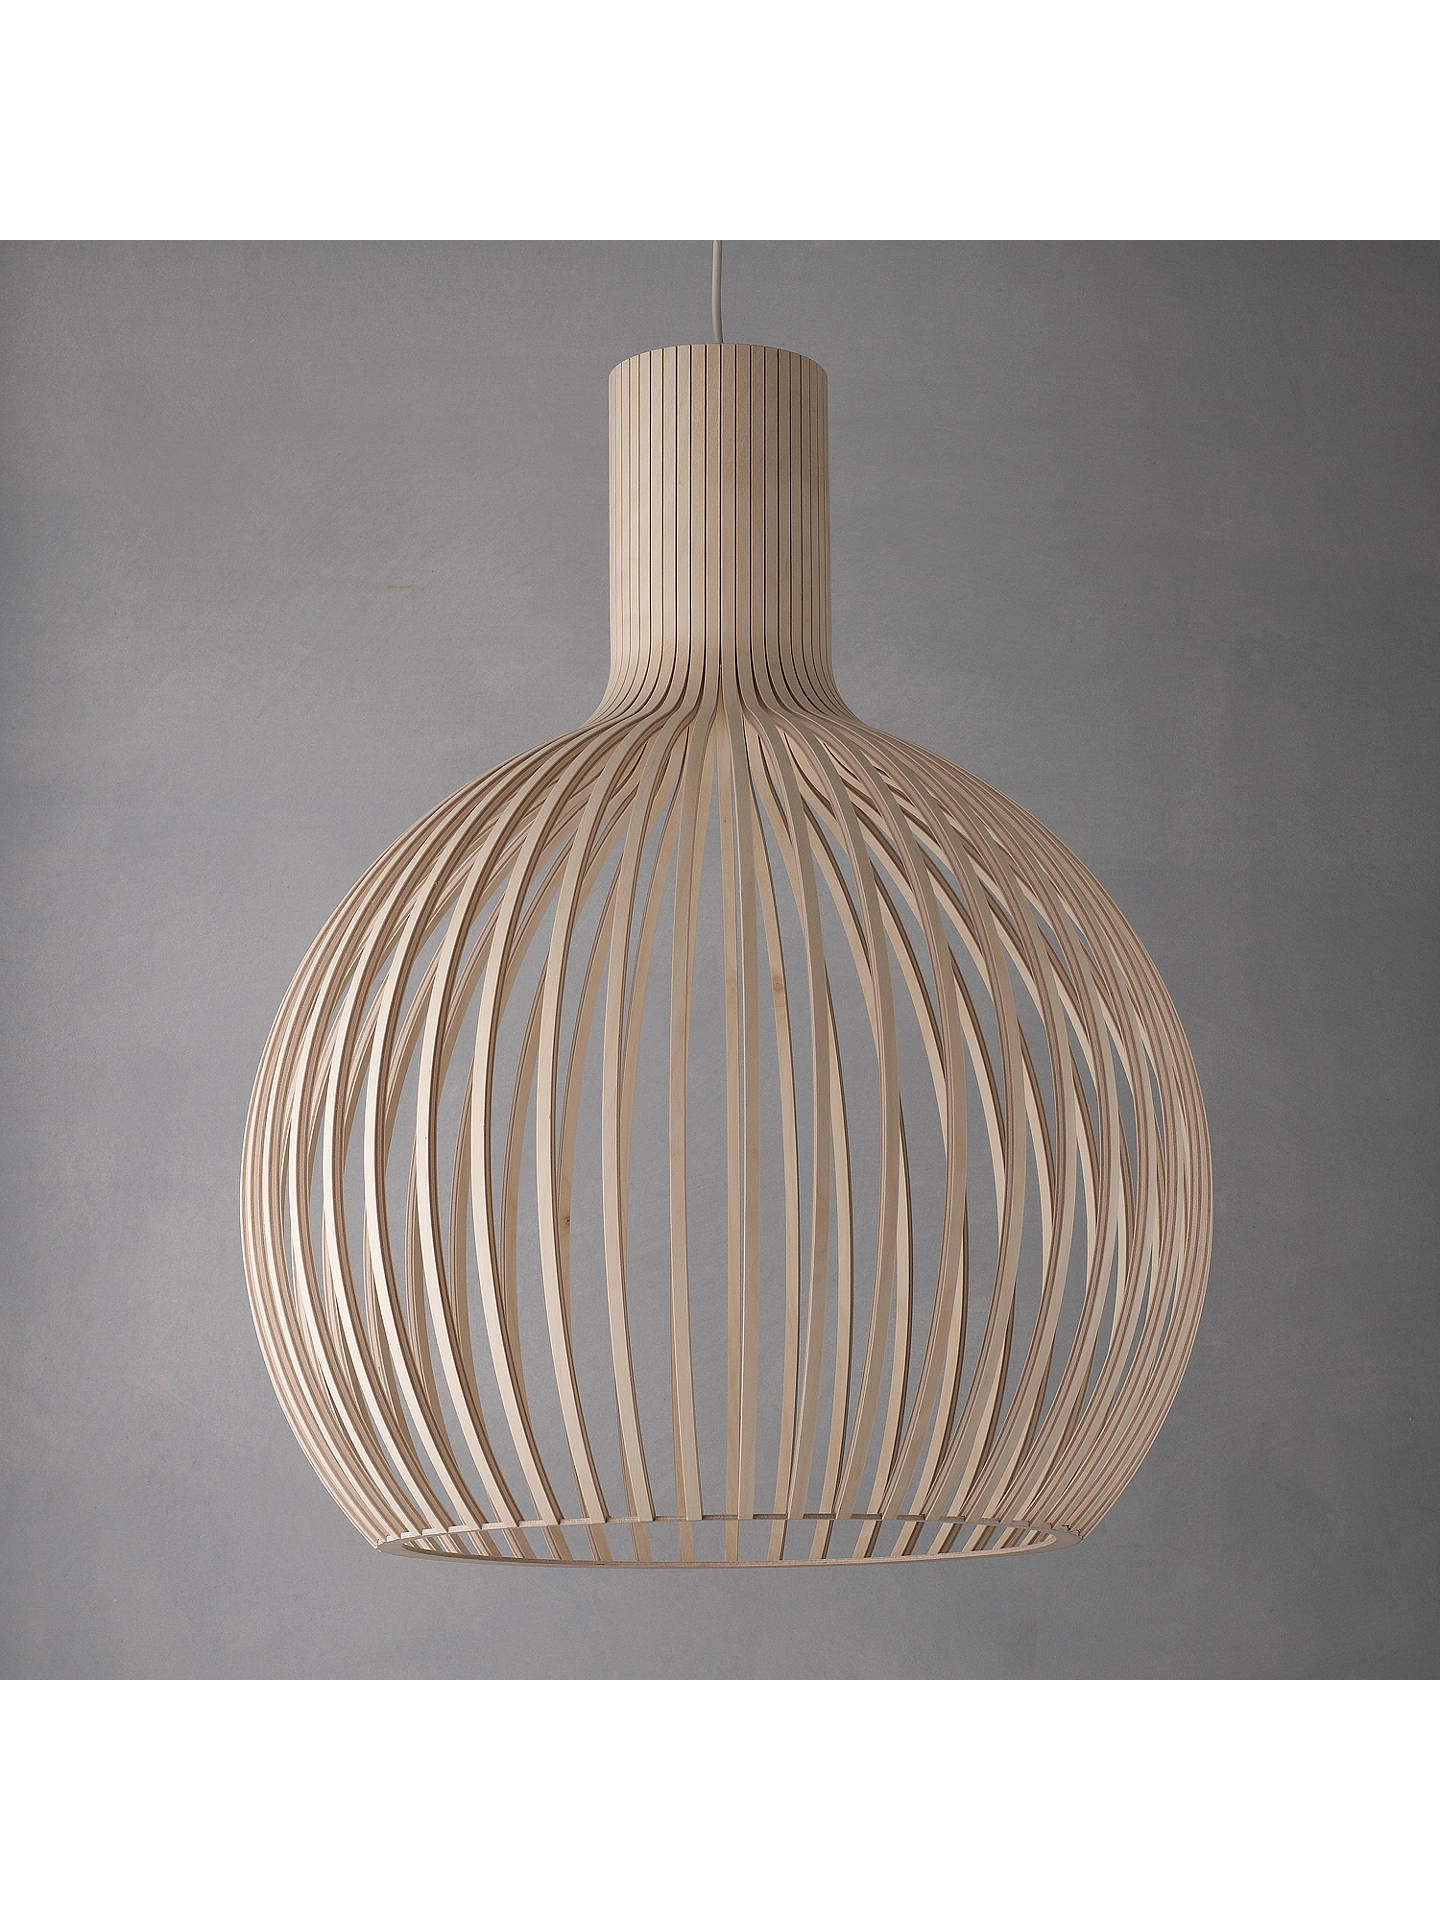 BuySecto Octo Ceiling Light, Birch Online at johnlewis.com